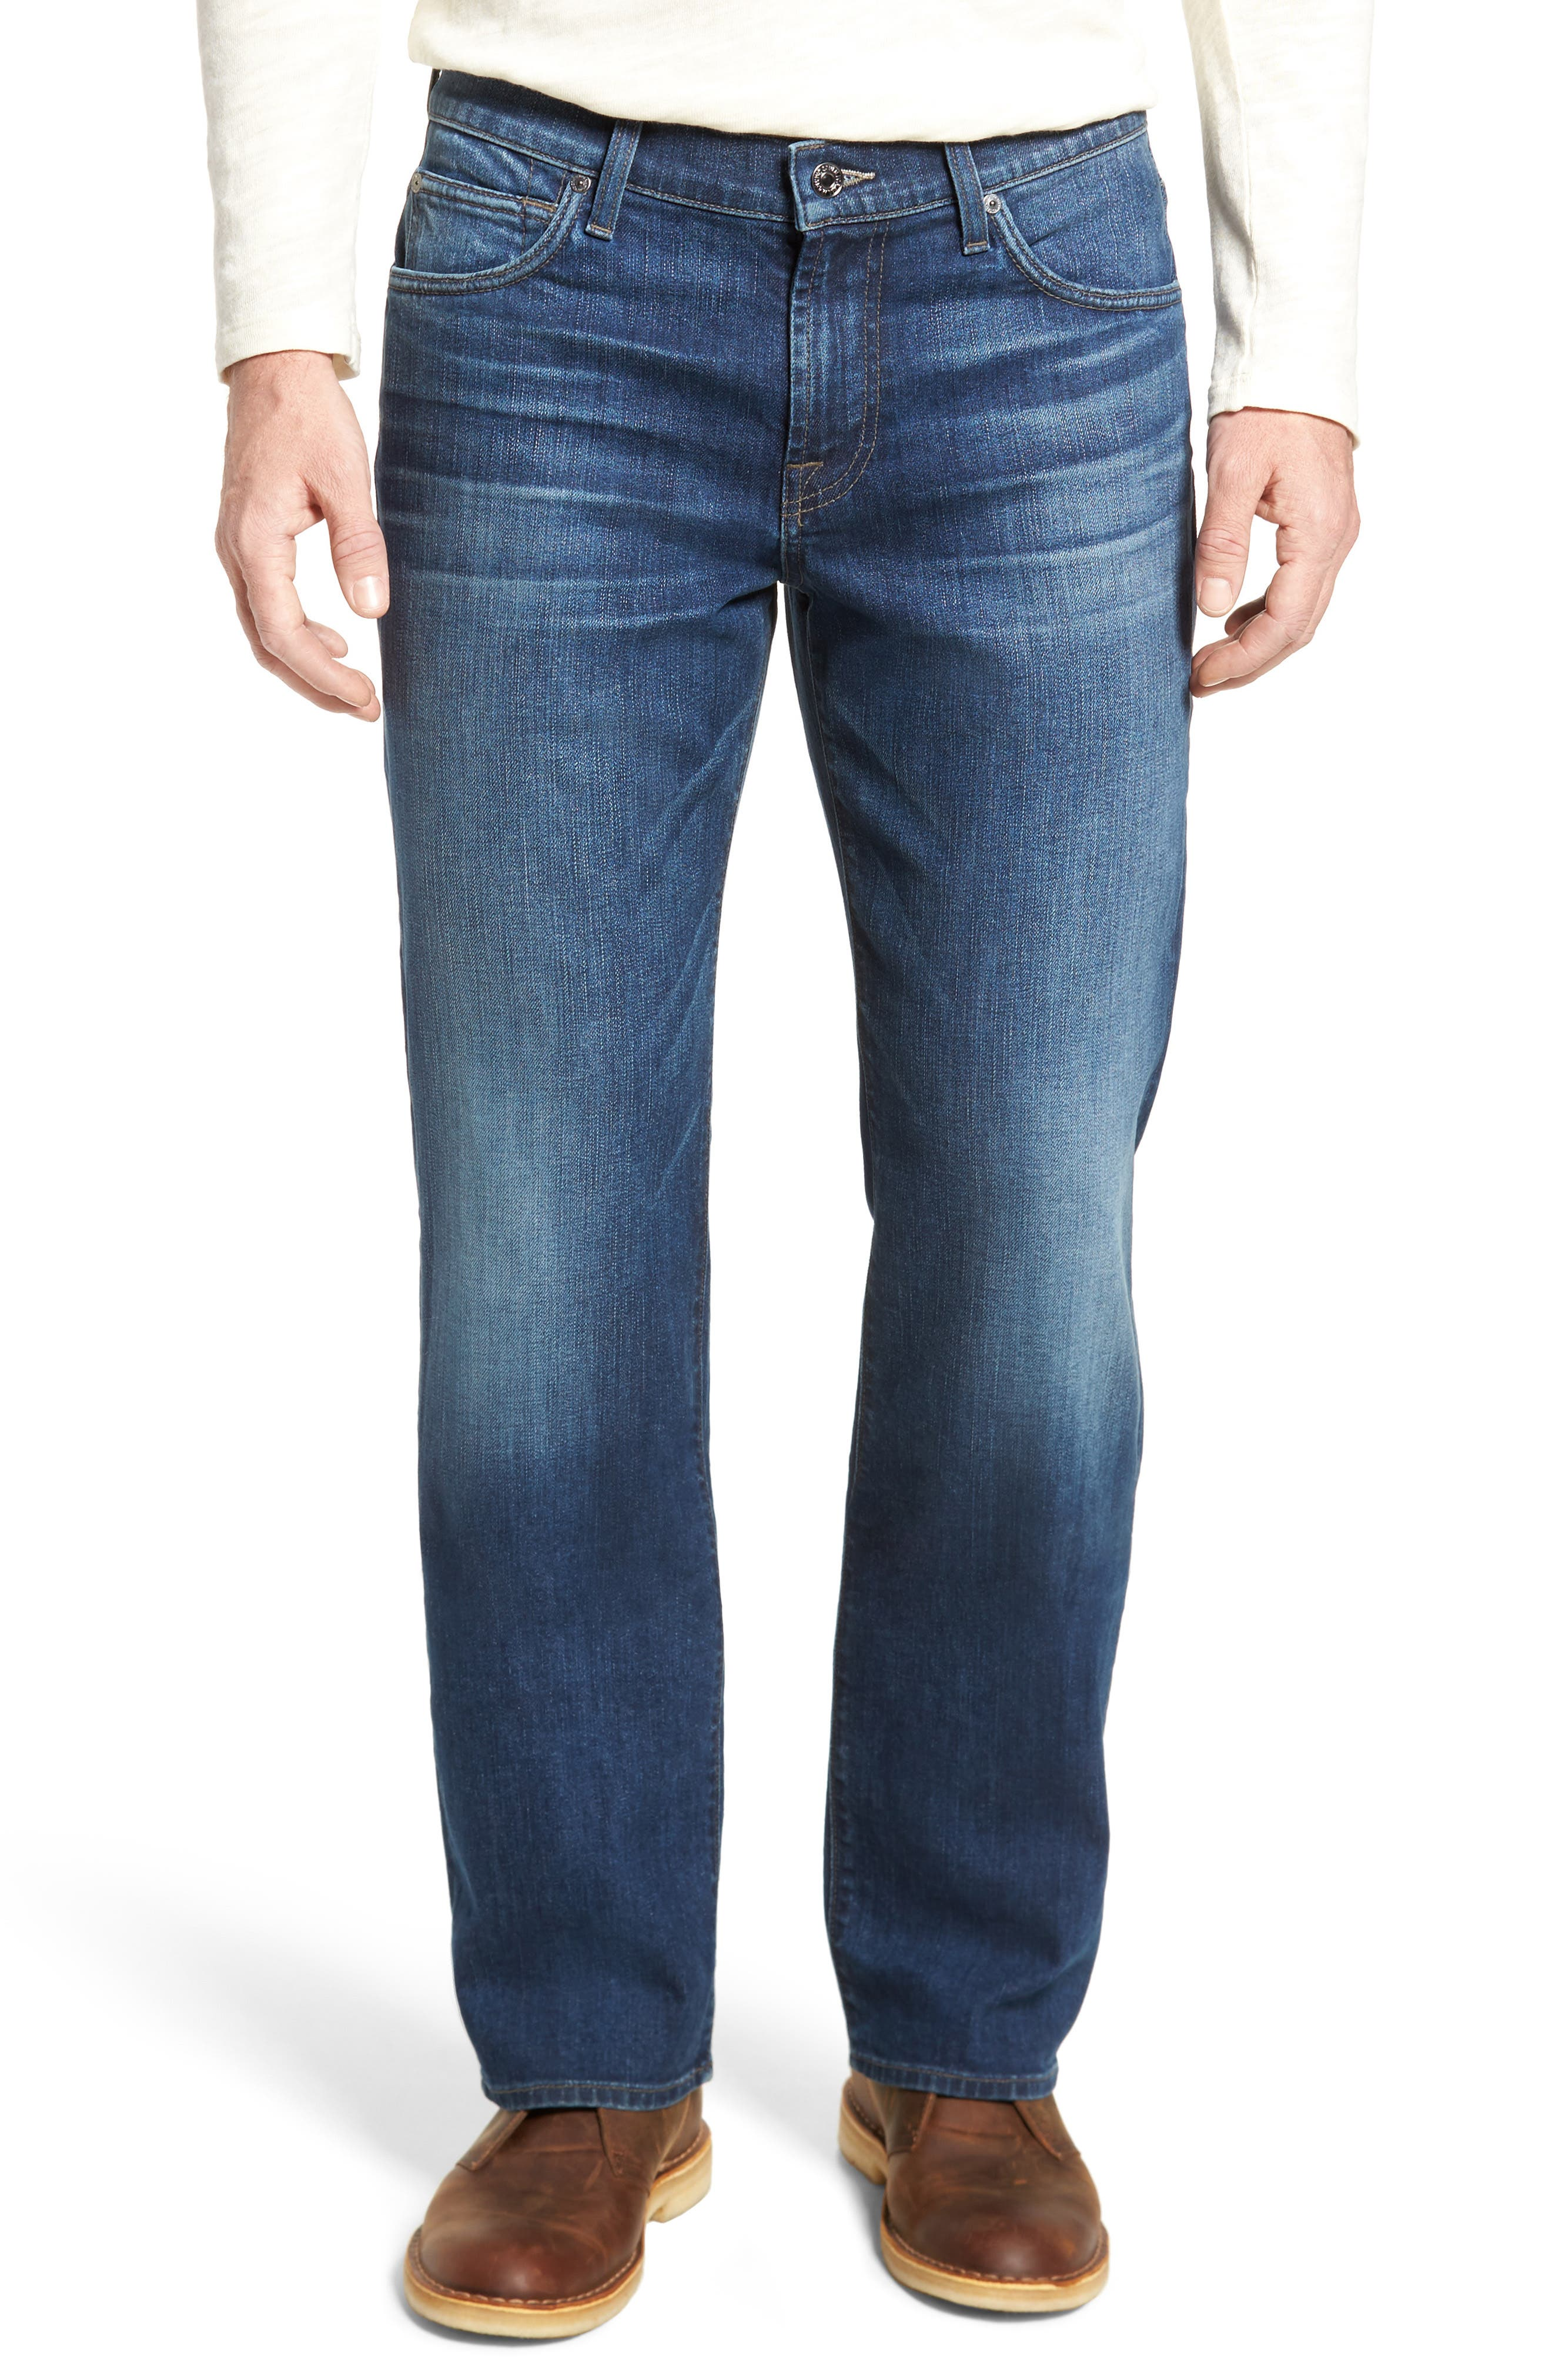 Alternate Image 1 Selected - 7 For All Mankind® Austyn Relaxed Fit Jeans (Recollection)